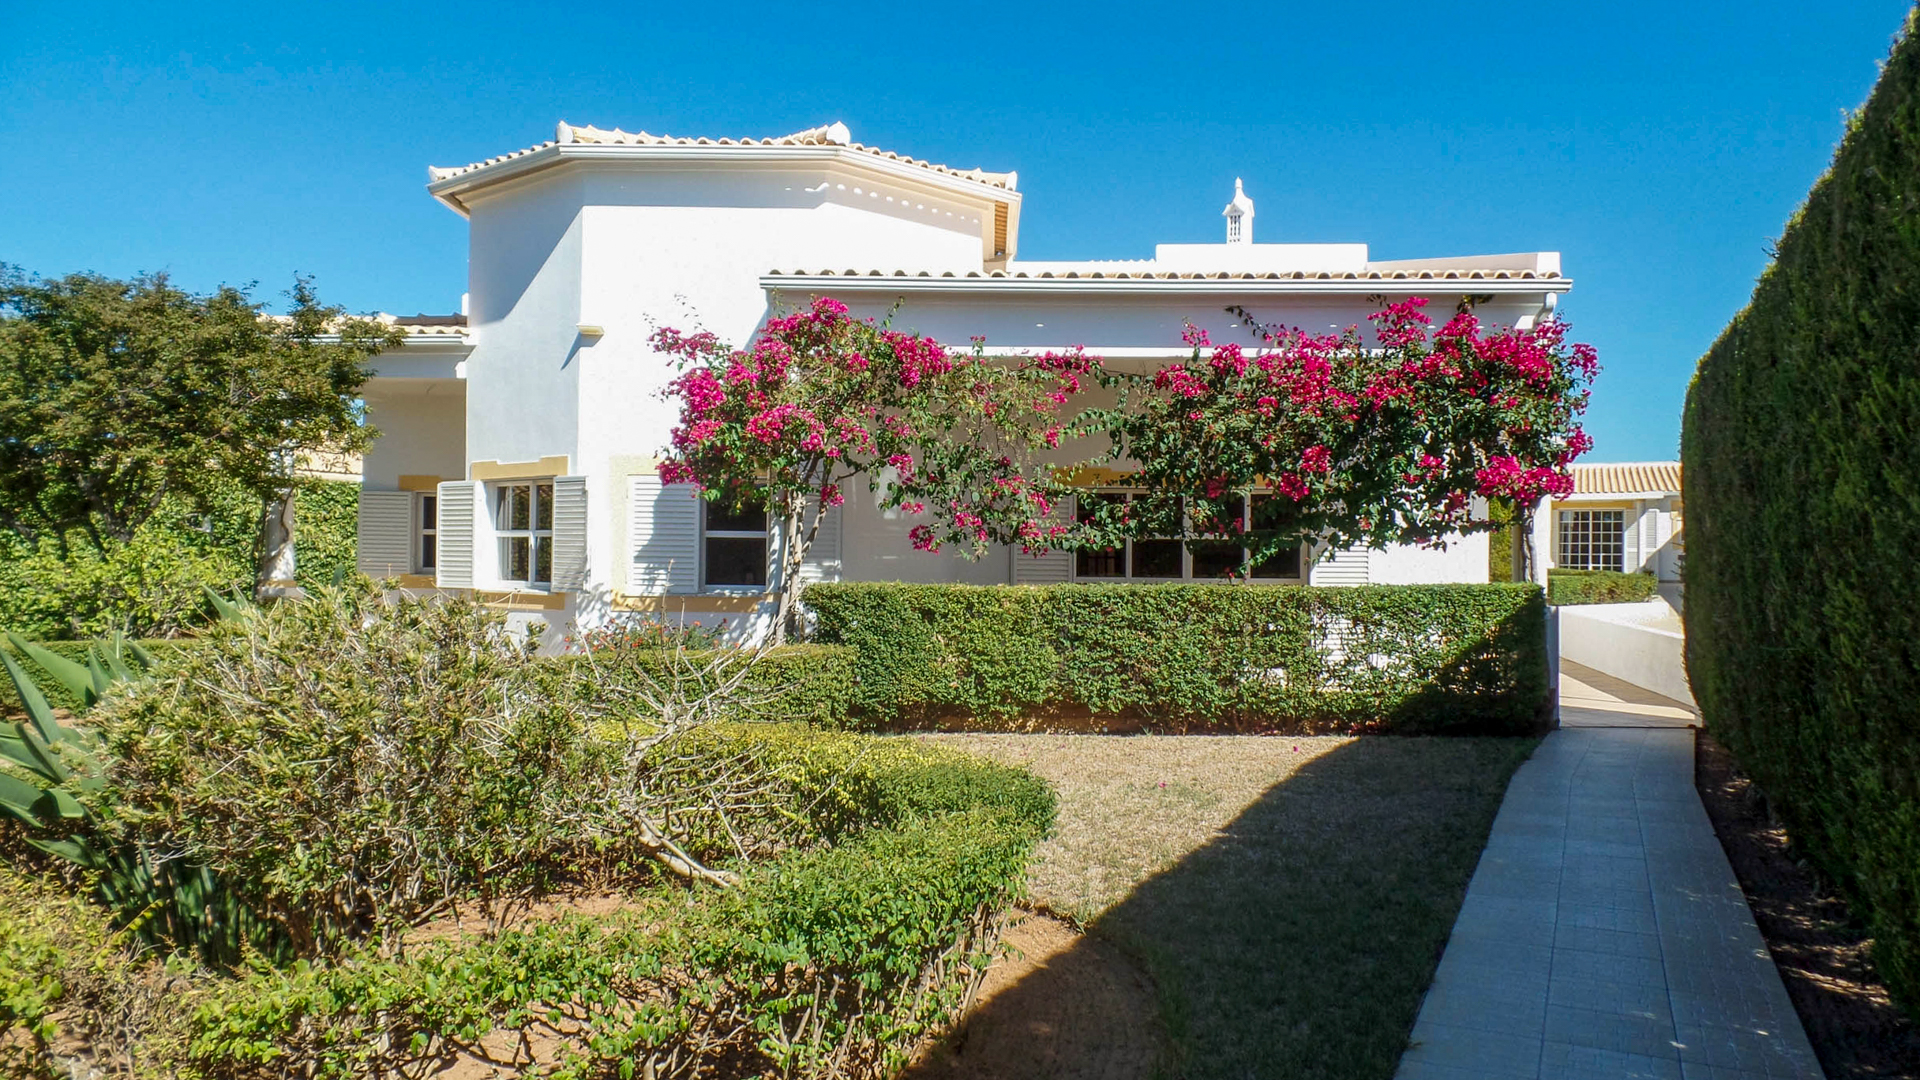 4 Bedroom Villa with Pool and 1 bed Annex, near Ferragudo, West Algarve | VM928